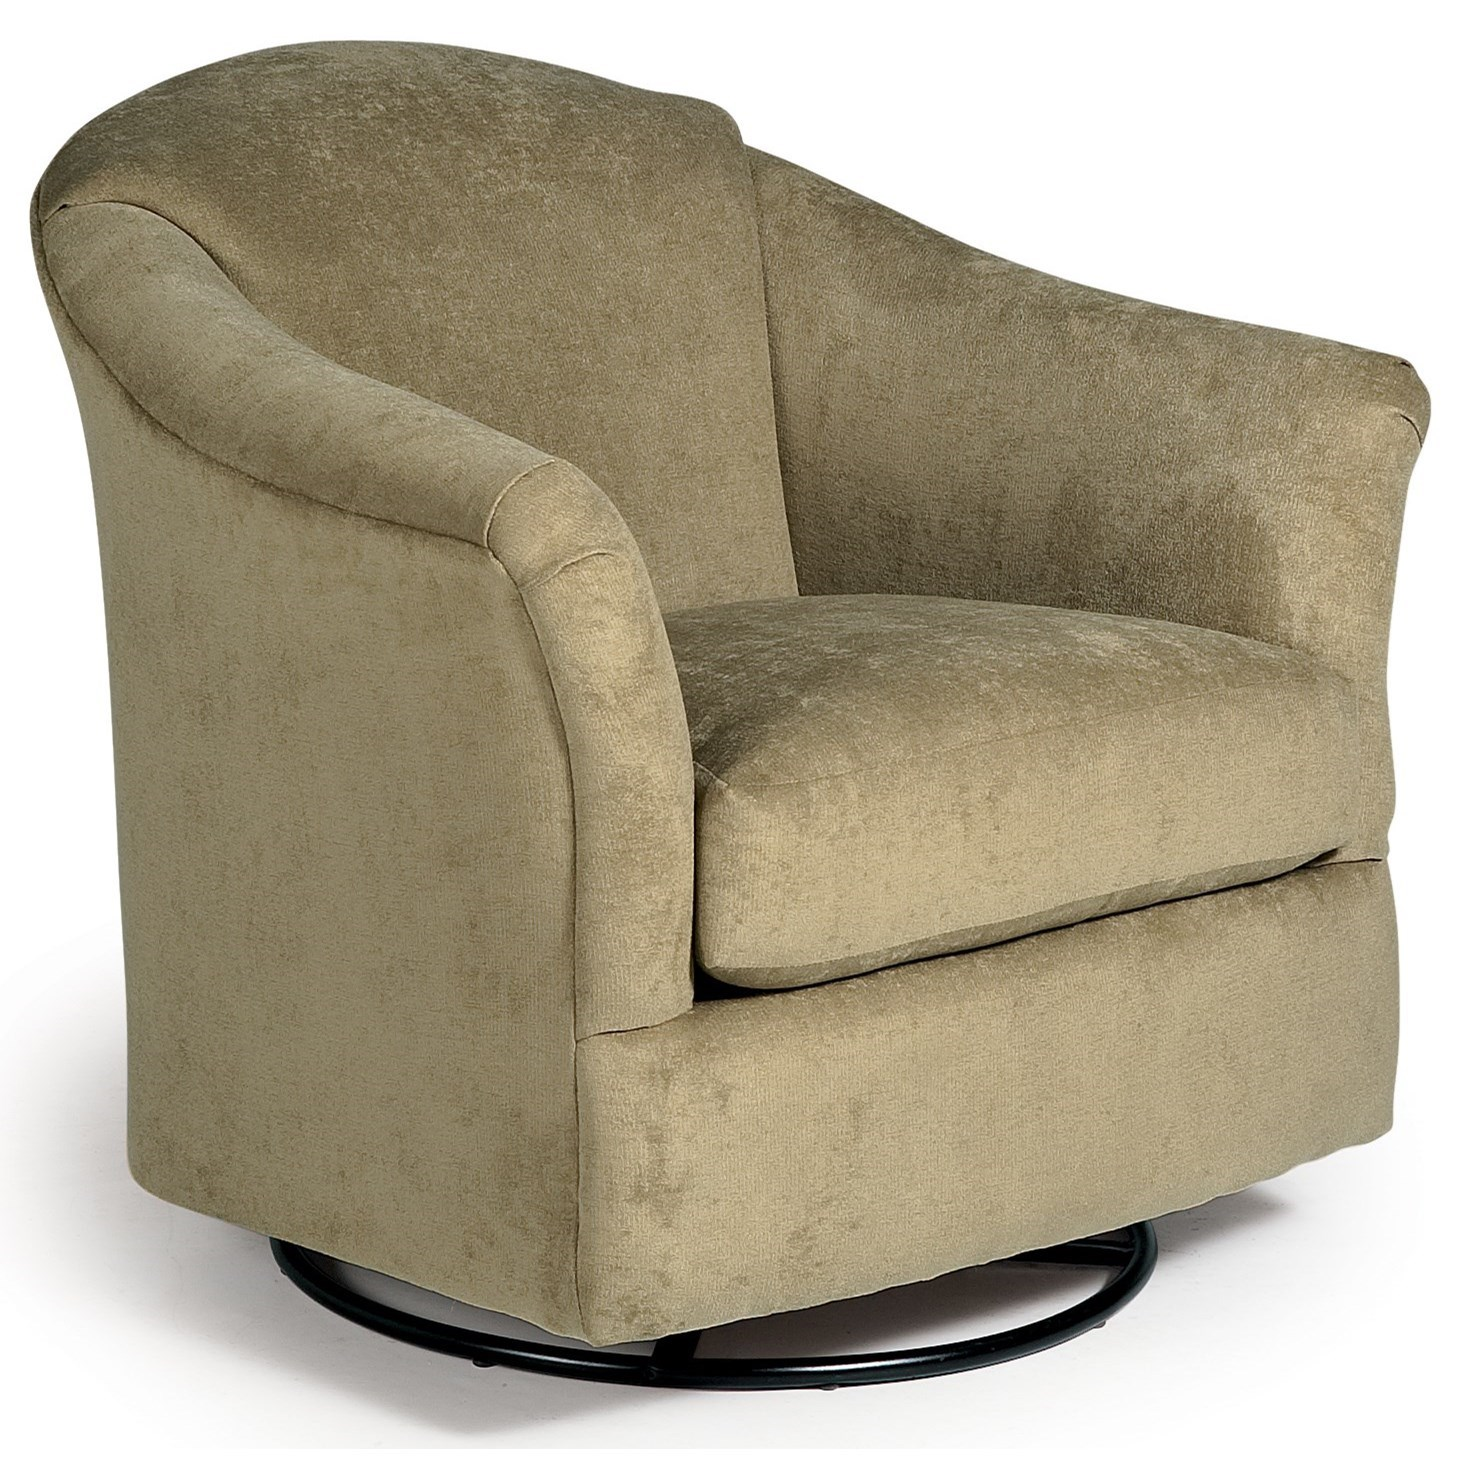 Swivel Glide Chairs Darby Swivel Glider by Best Home Furnishings at Wilcox Furniture